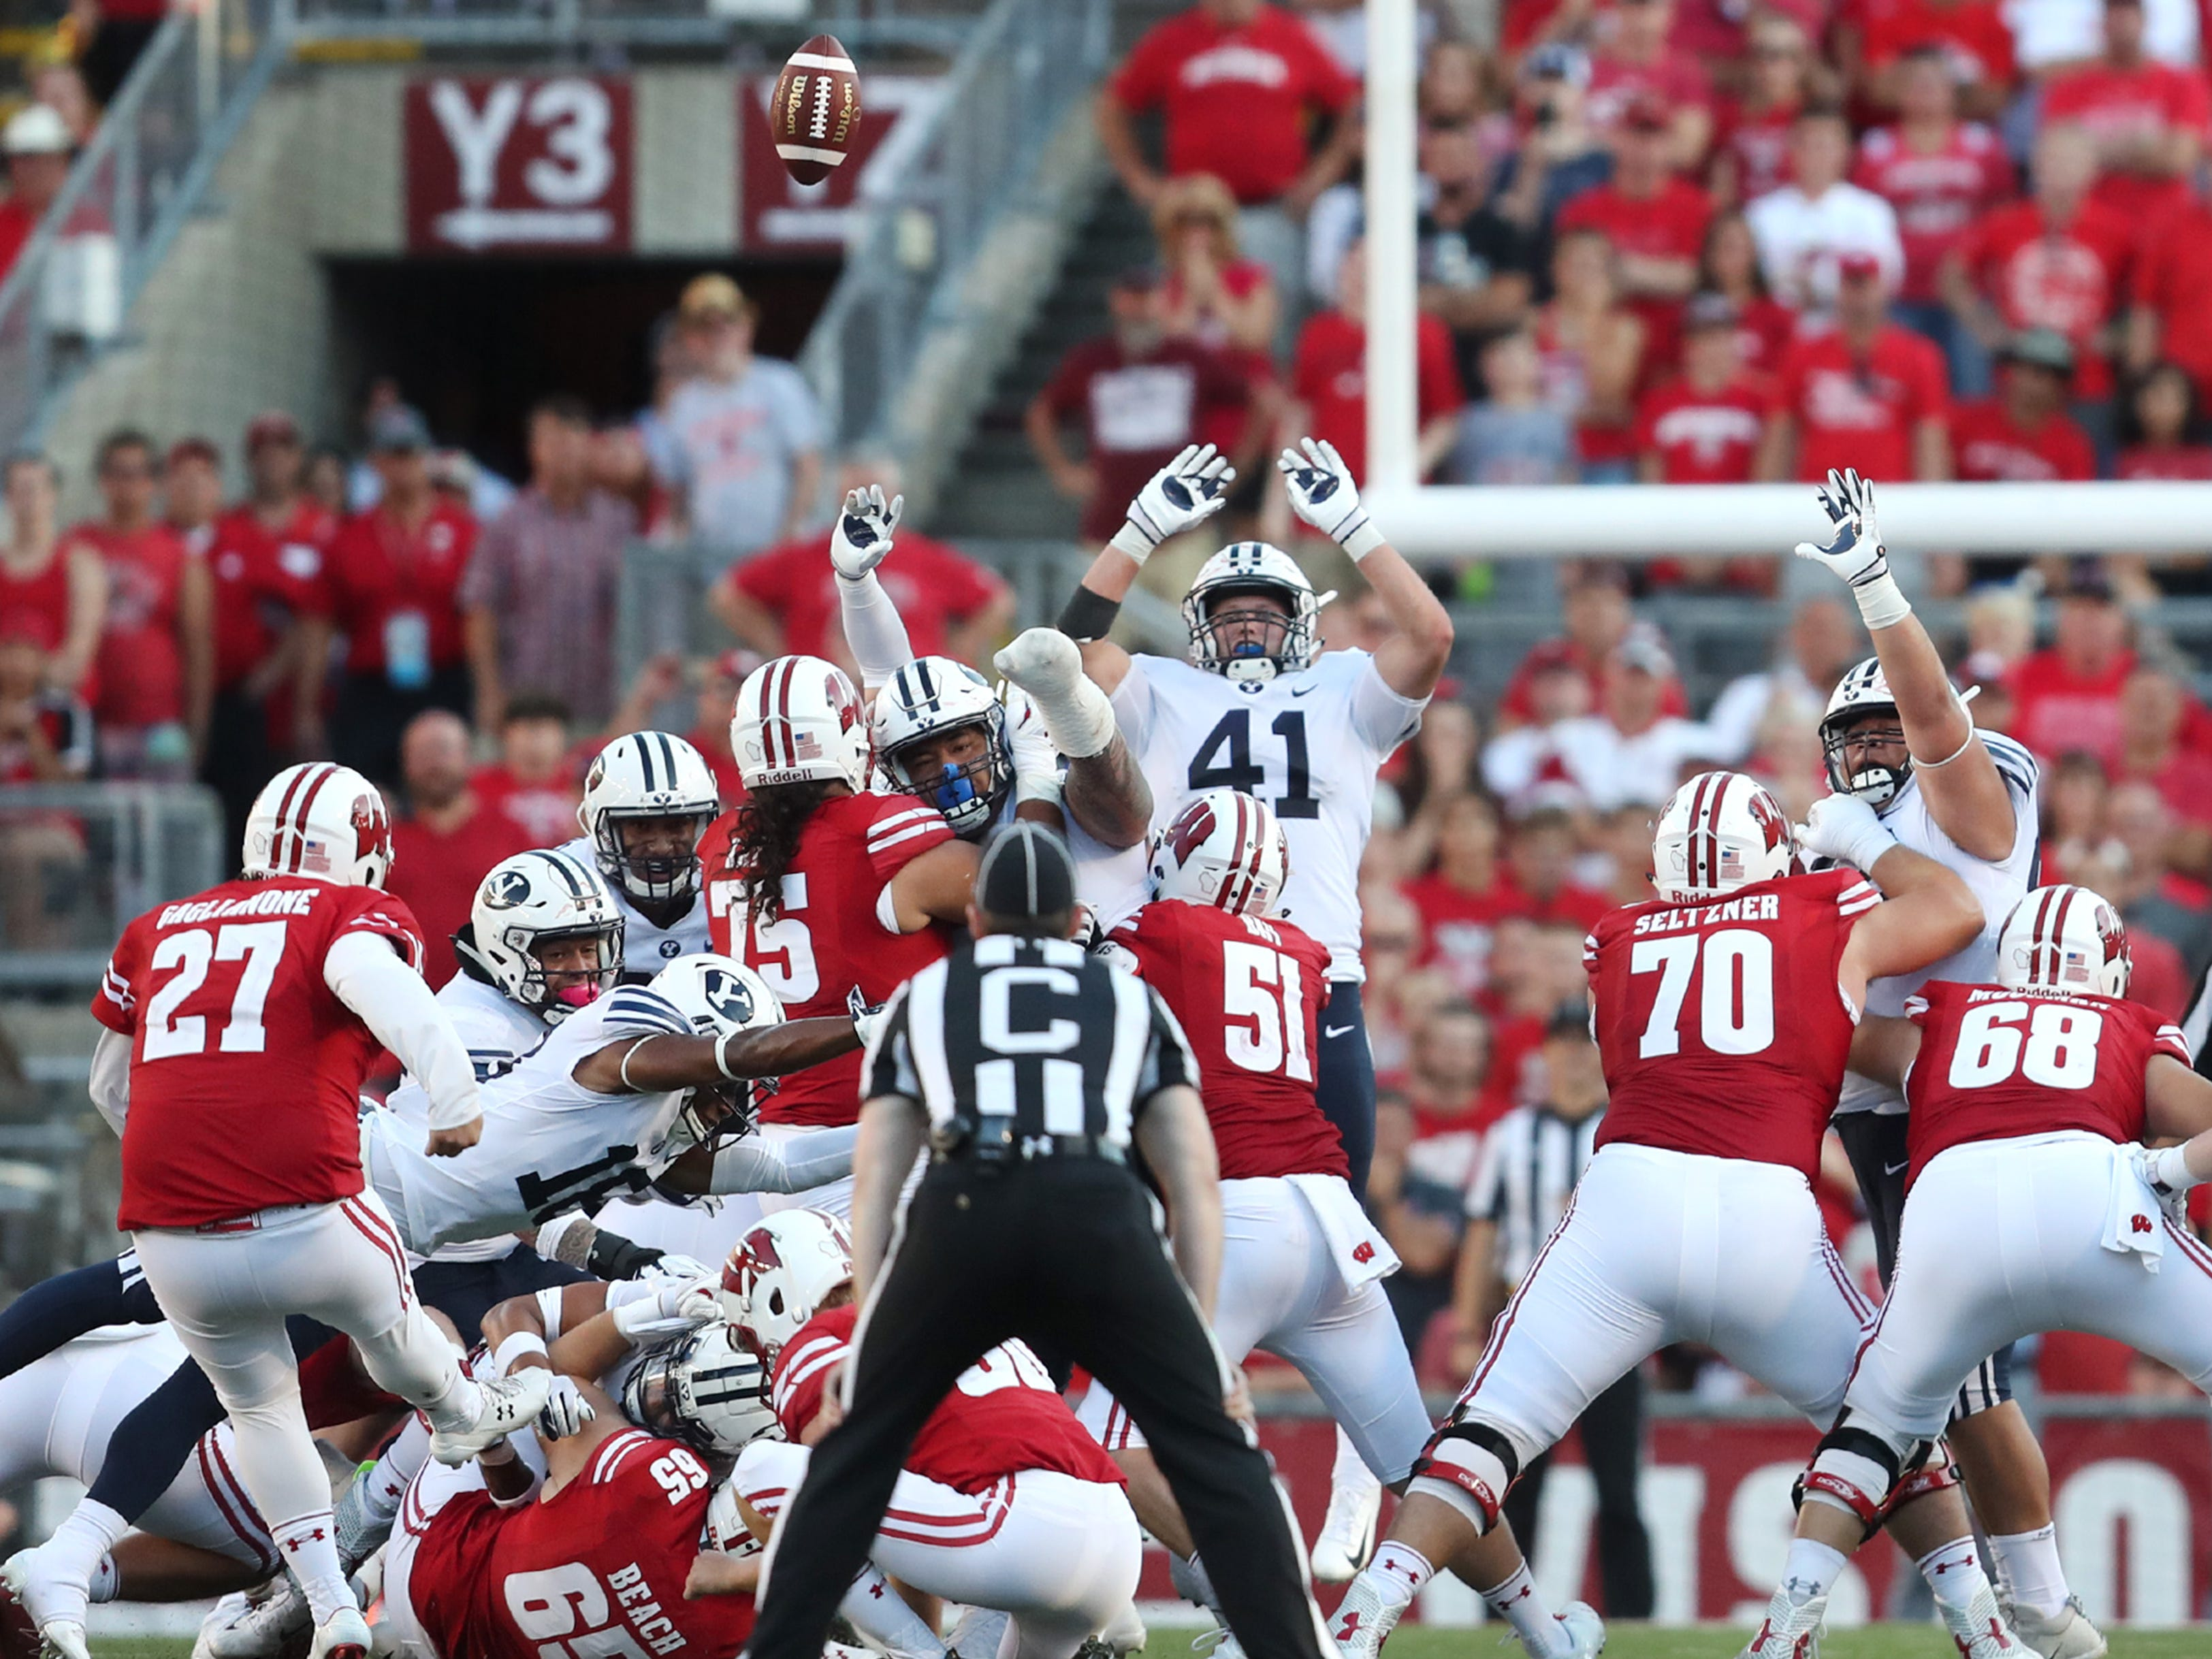 Wisconsin Badgers kicker Rafael Gaglianone (27) misses a 42-yard field goal attempt that would have tied their game against the Brigham Young Cougars on Saturday.